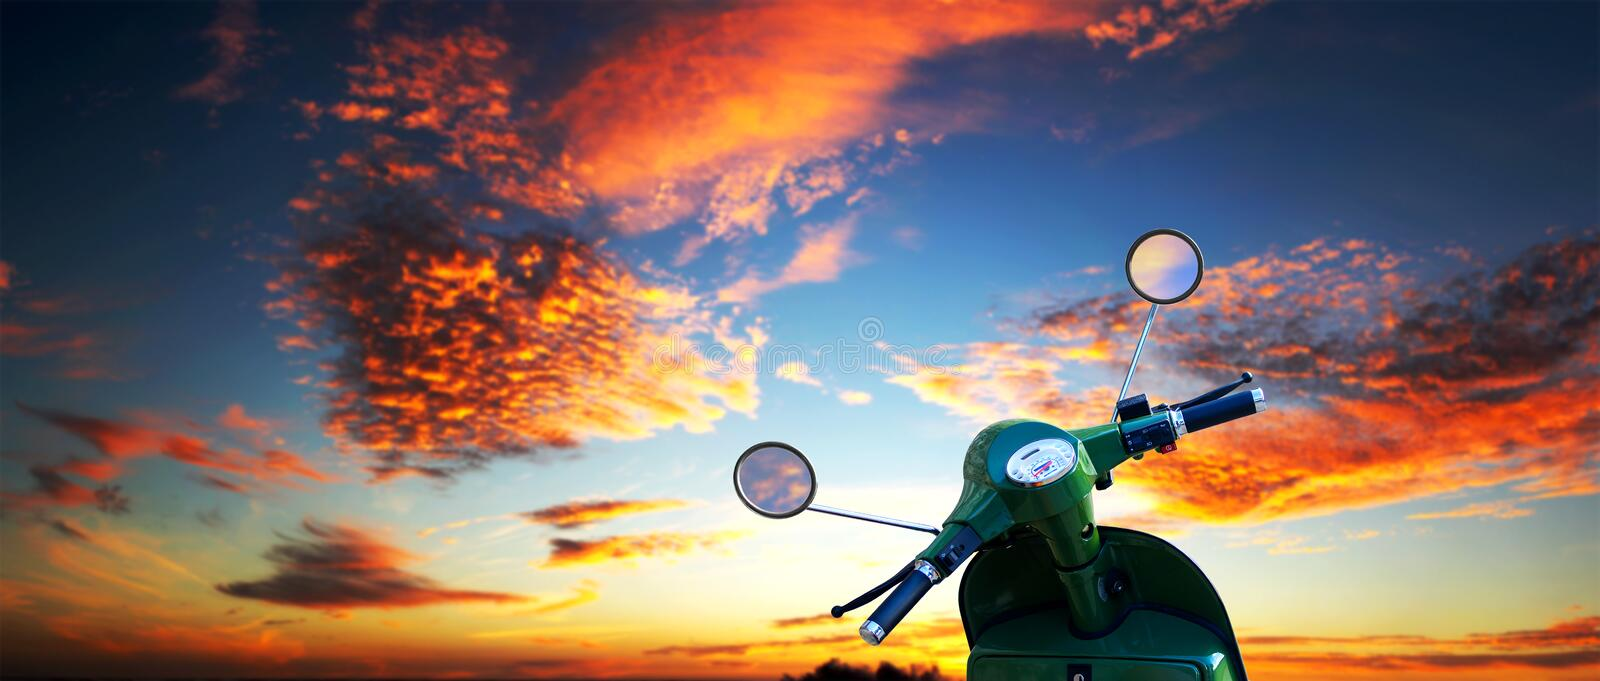 Scooter over a dramatic sky. Scooter over a beautiful vibrant sunset sky - Detailed clipping paths for both motorcycle body and mirrors royalty free stock photo